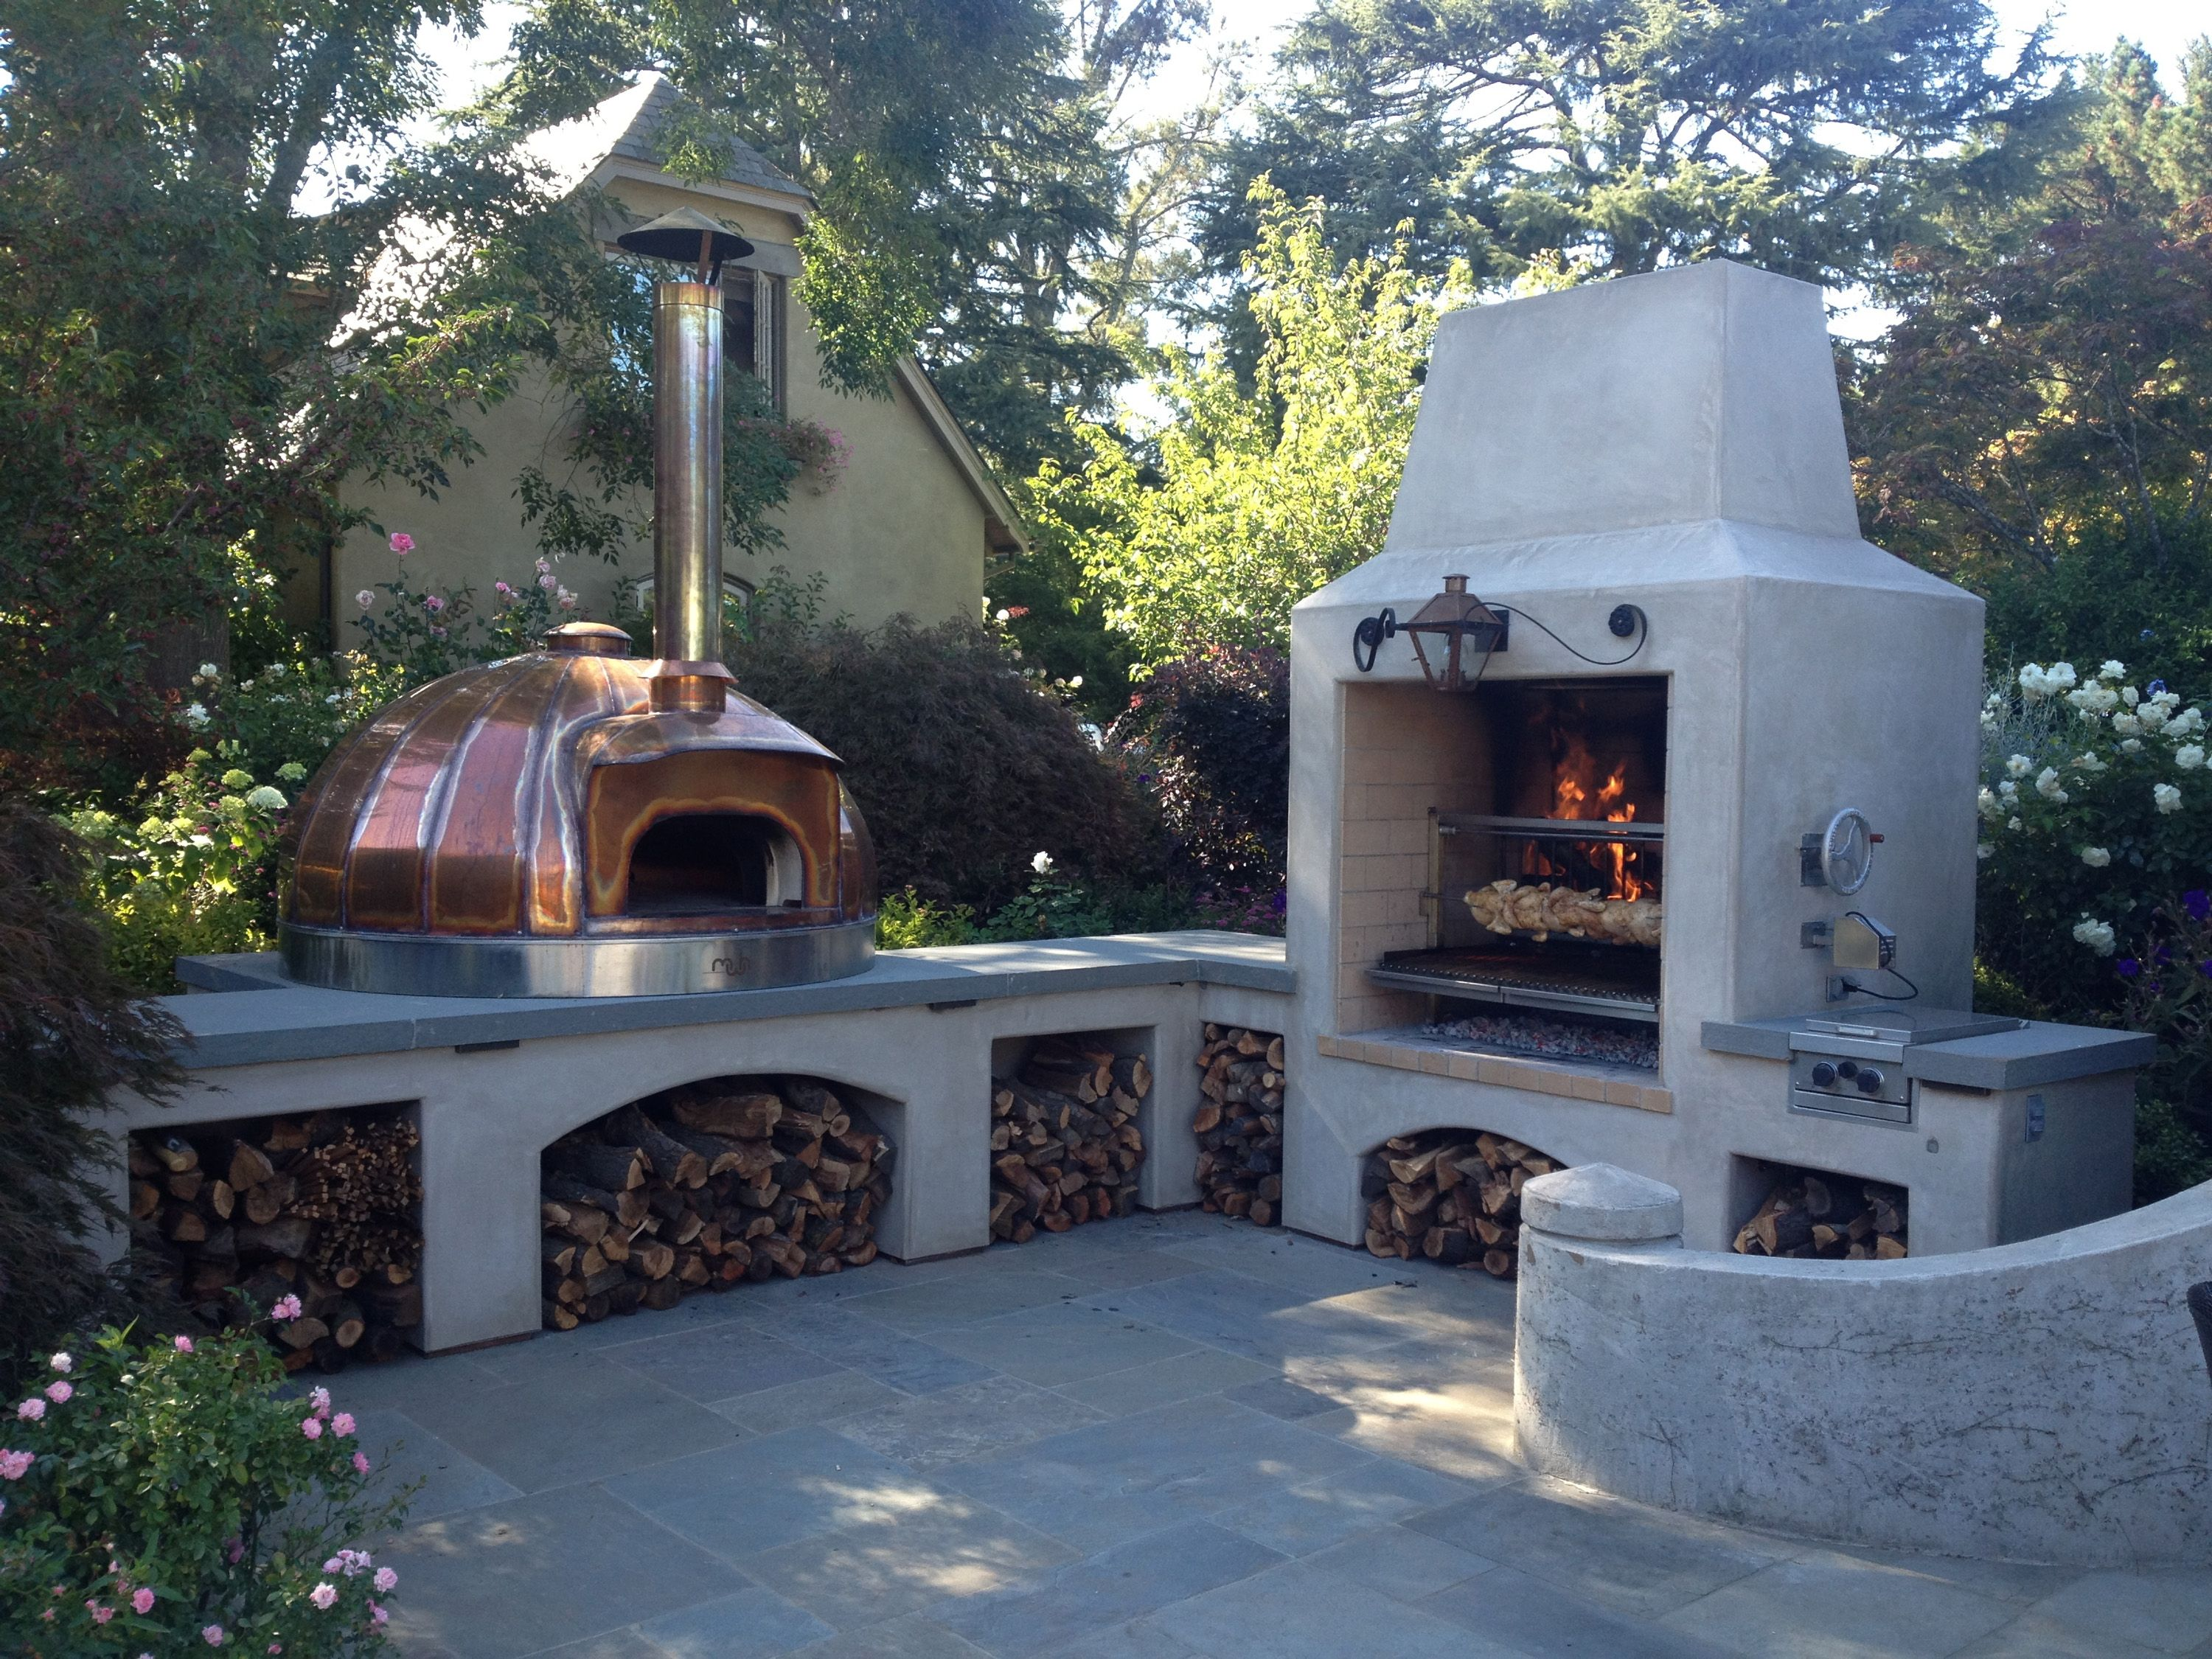 Outdoor Kitchen Le Panyol Copper Wood Fired Oven Model 120 Maine Wood Heat Co Mwh Outdoor Kitchen Diy Outdoor Kitchen Outdoor